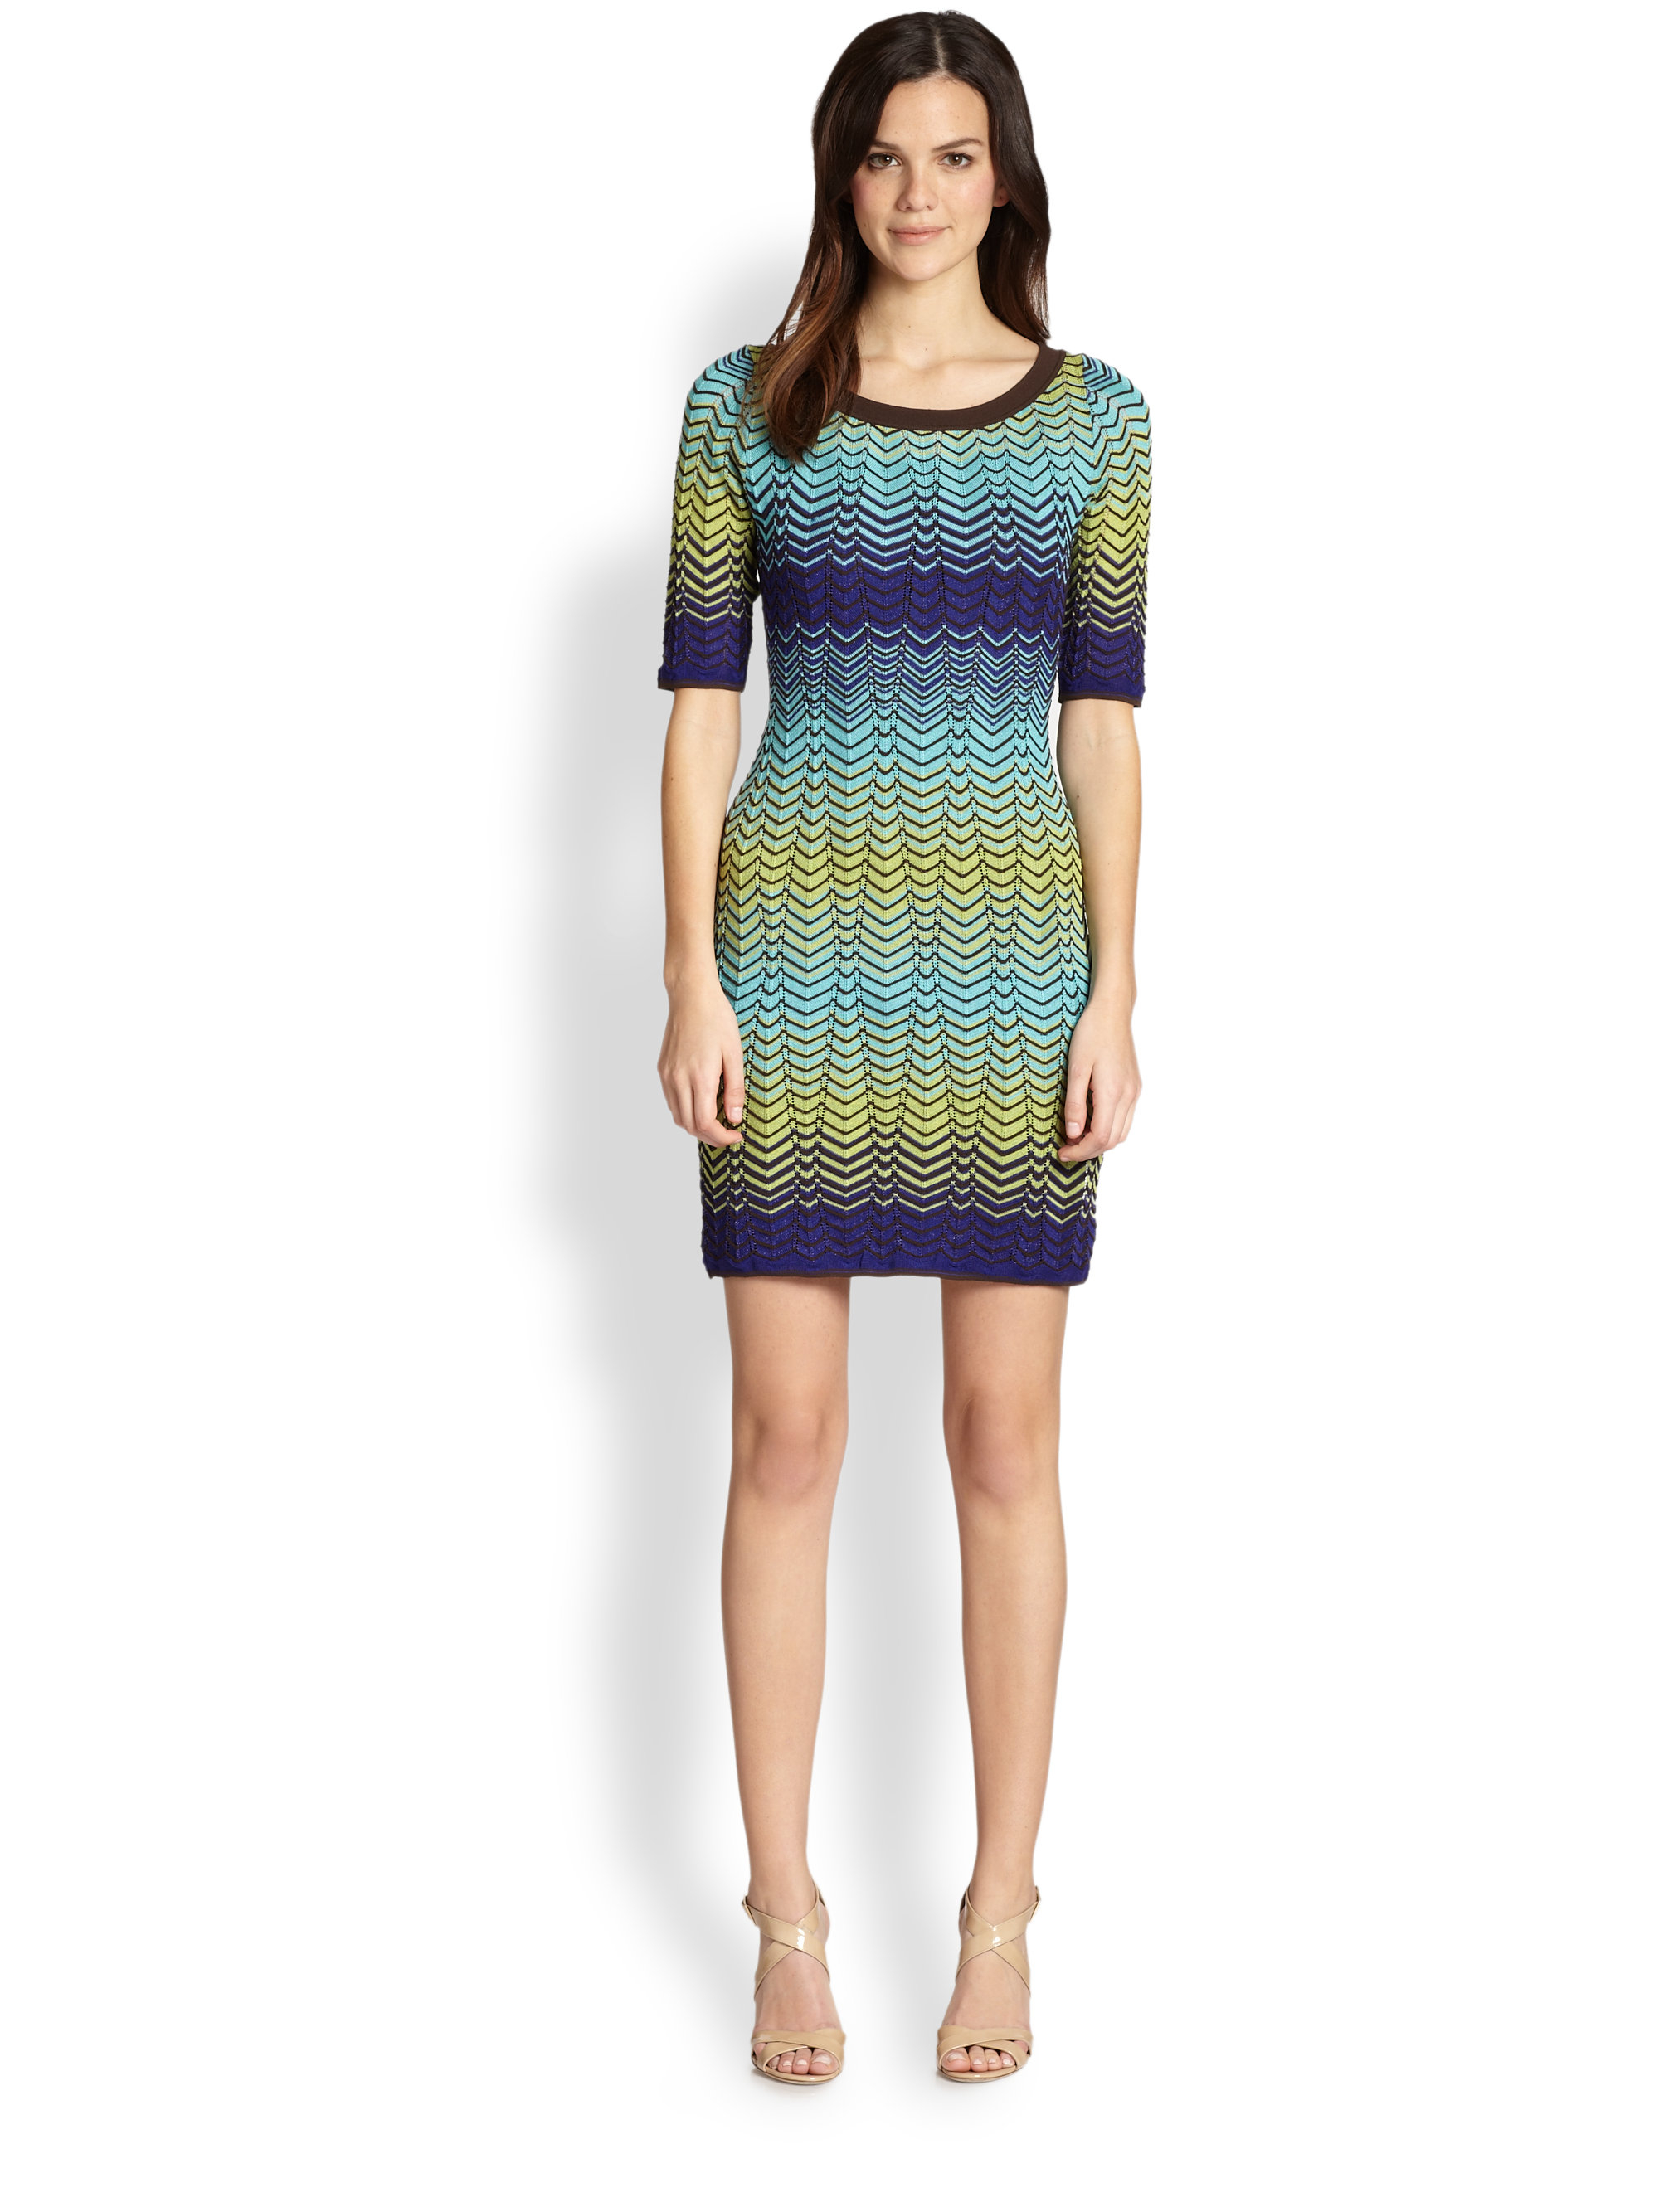 Knit Dresses With Sleeves